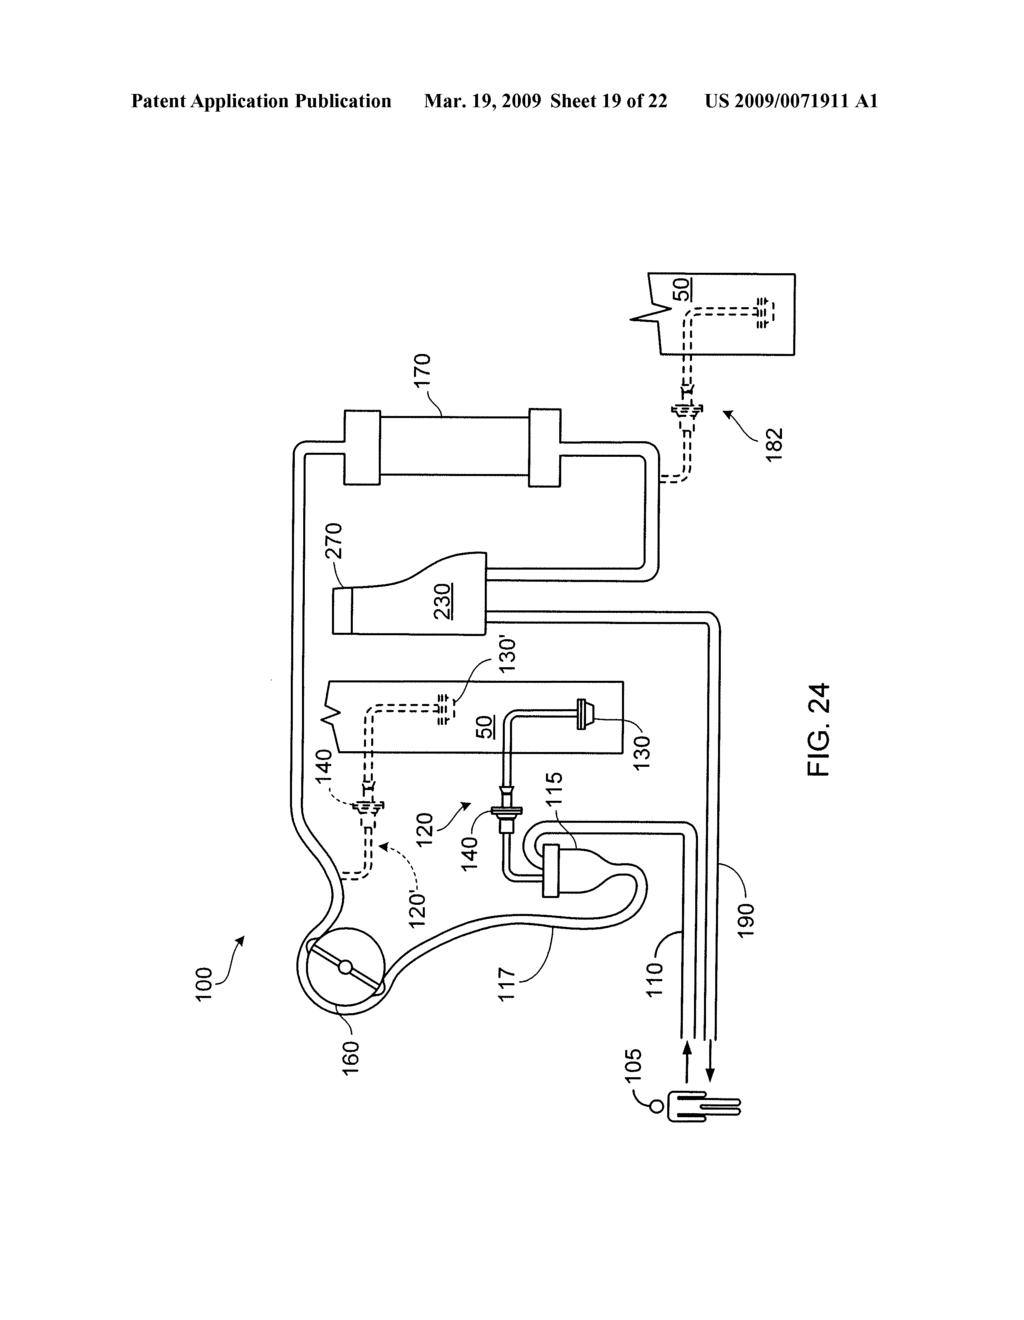 hight resolution of safety vent structure for extracorporeal circuit diagram schematic and image 20